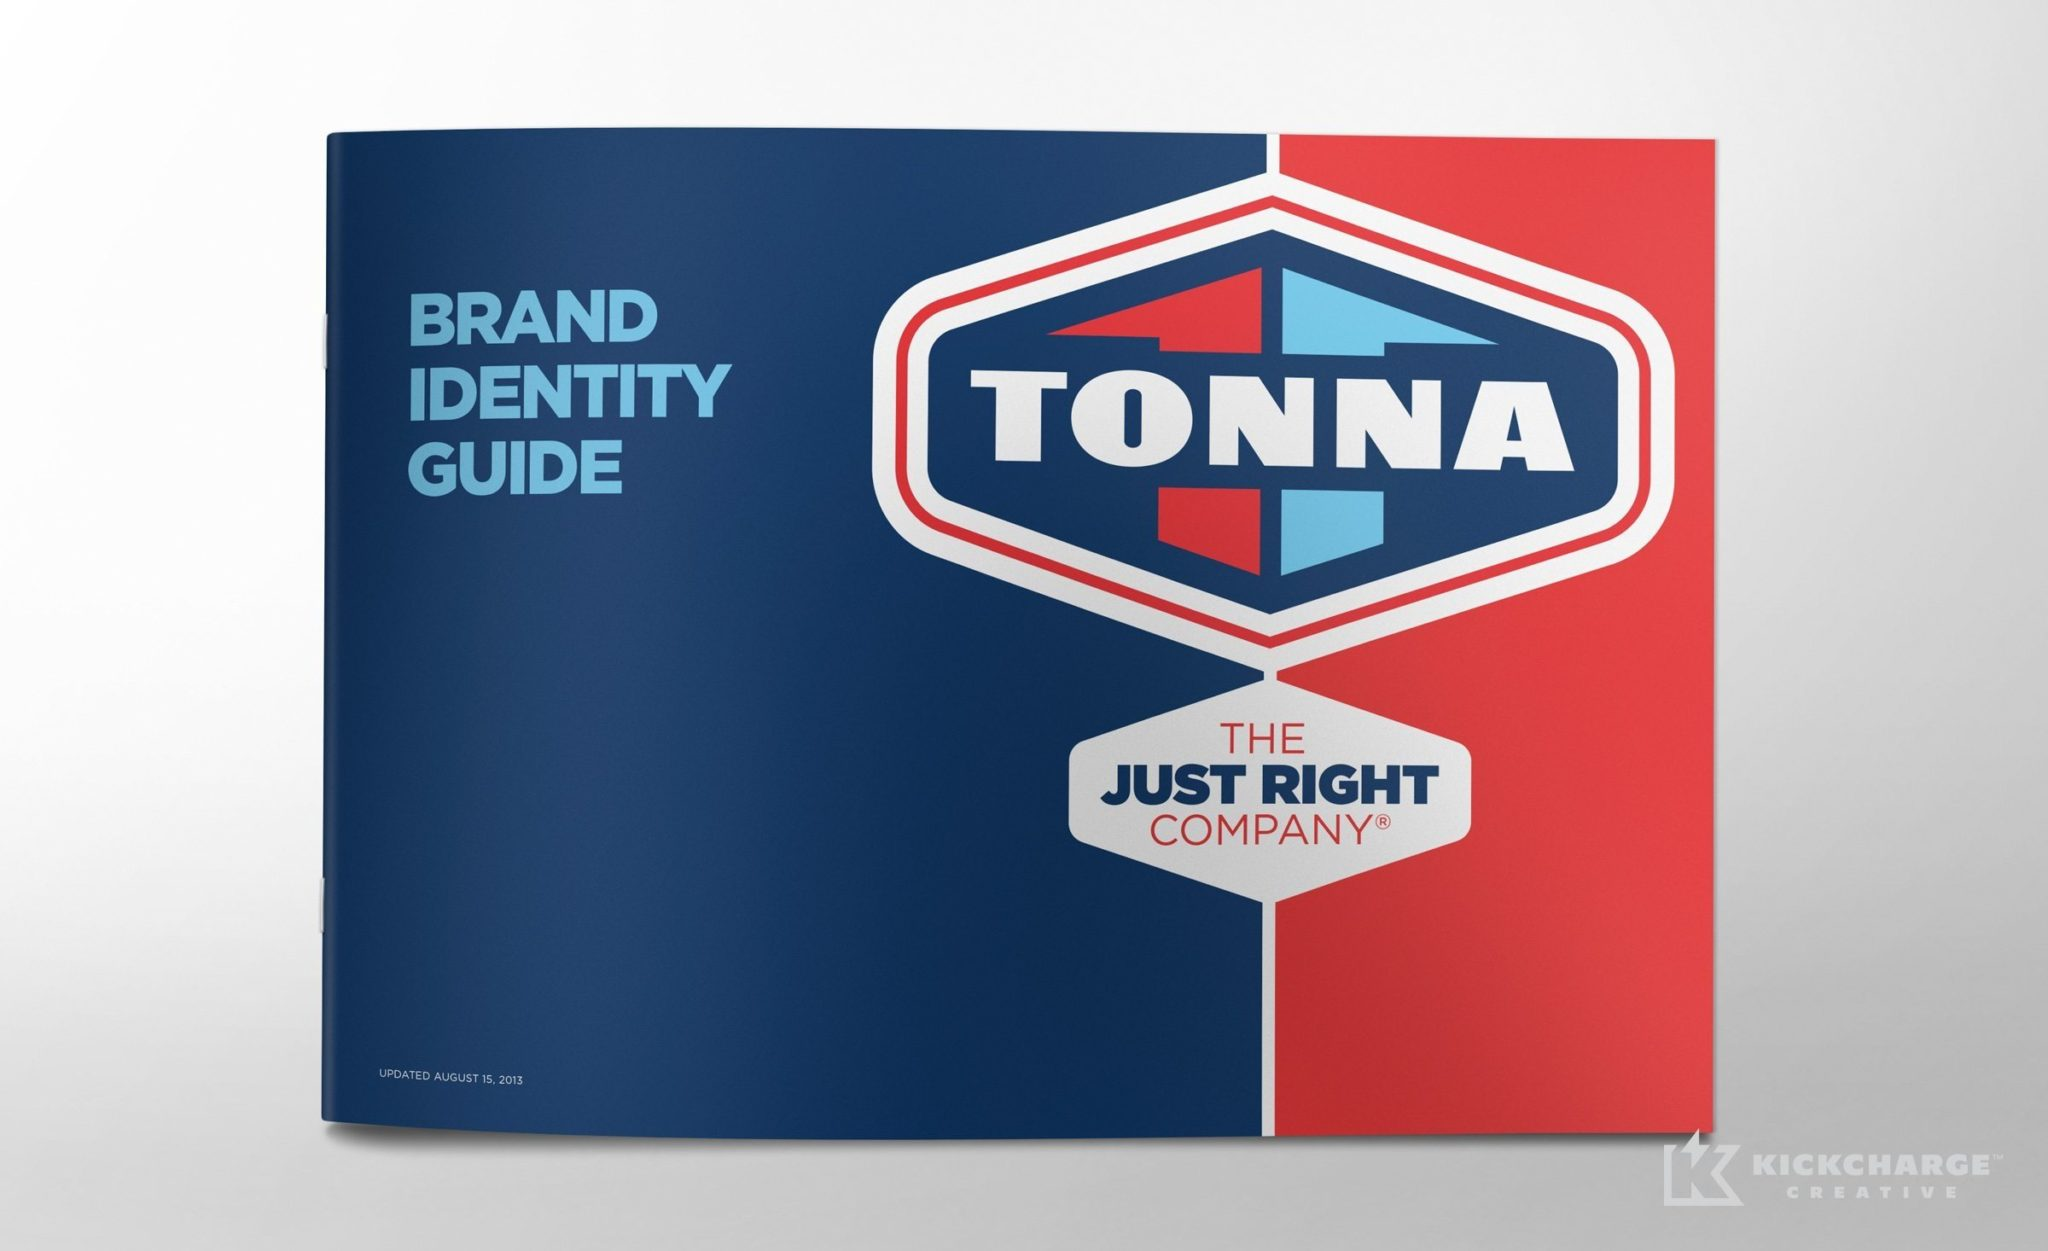 Brand identity guide for Tonna Mechanical.